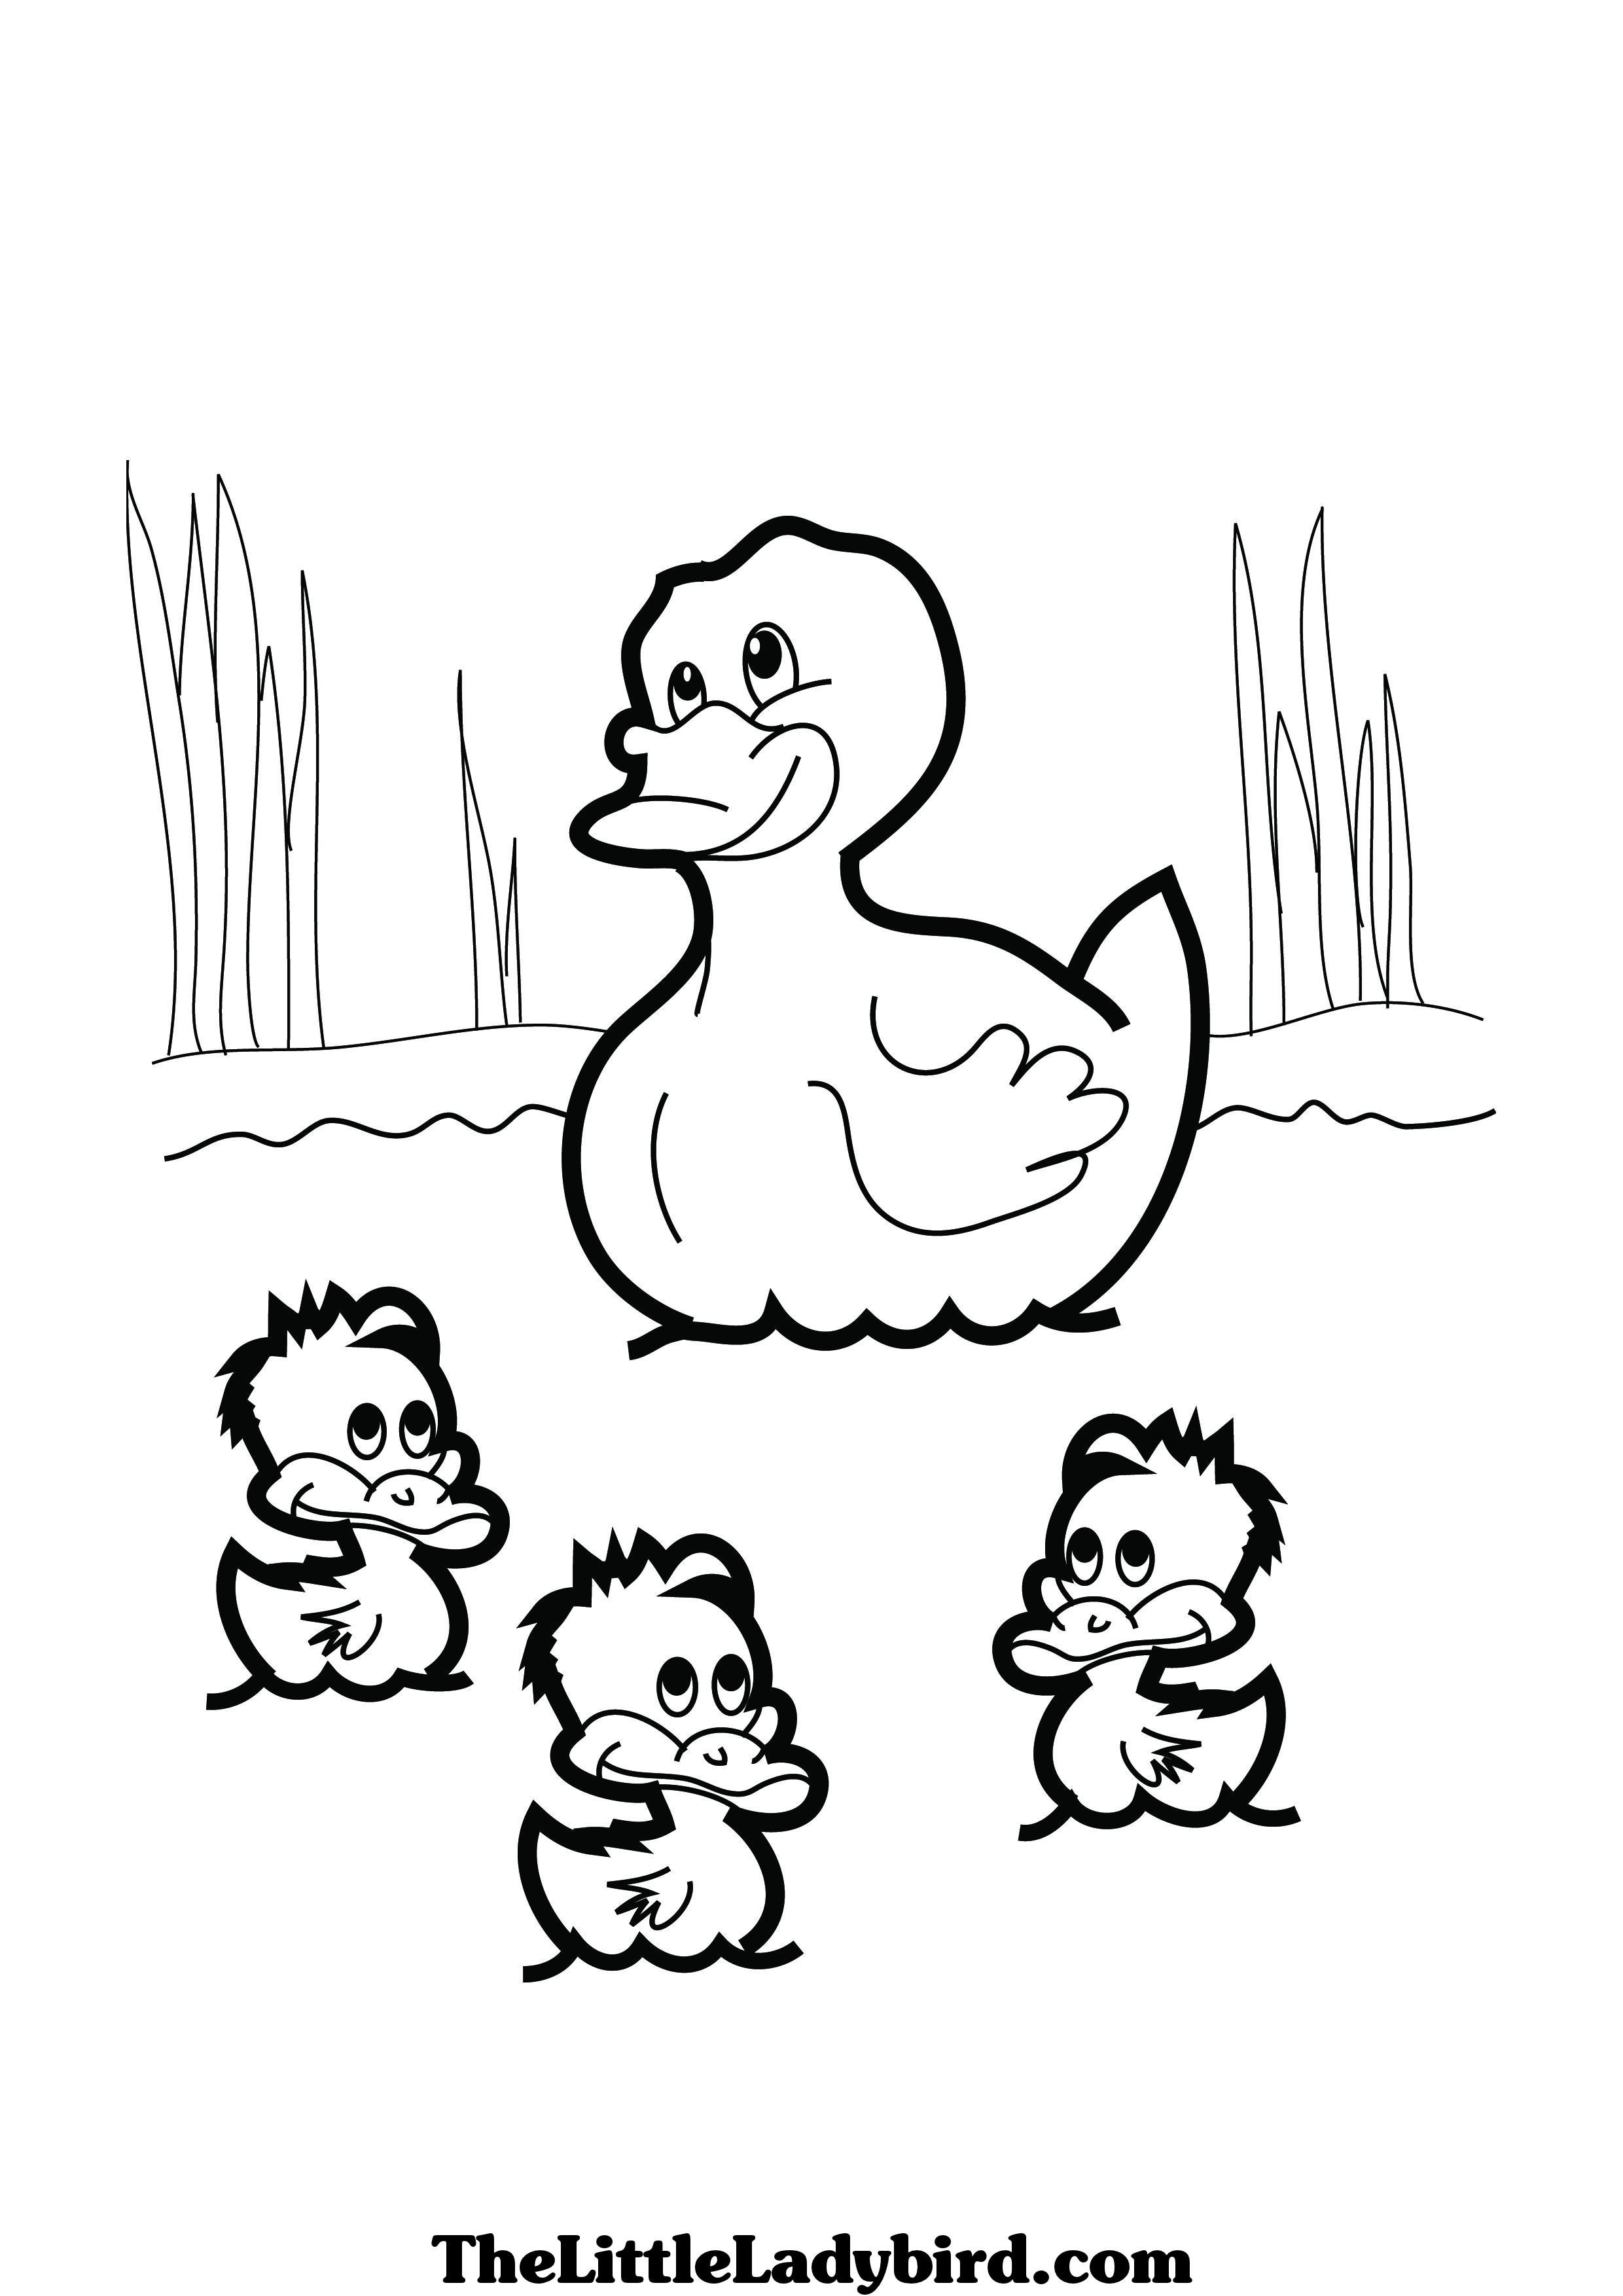 Baby Ducks Drawing at GetDrawings.com | Free for personal use Baby ...